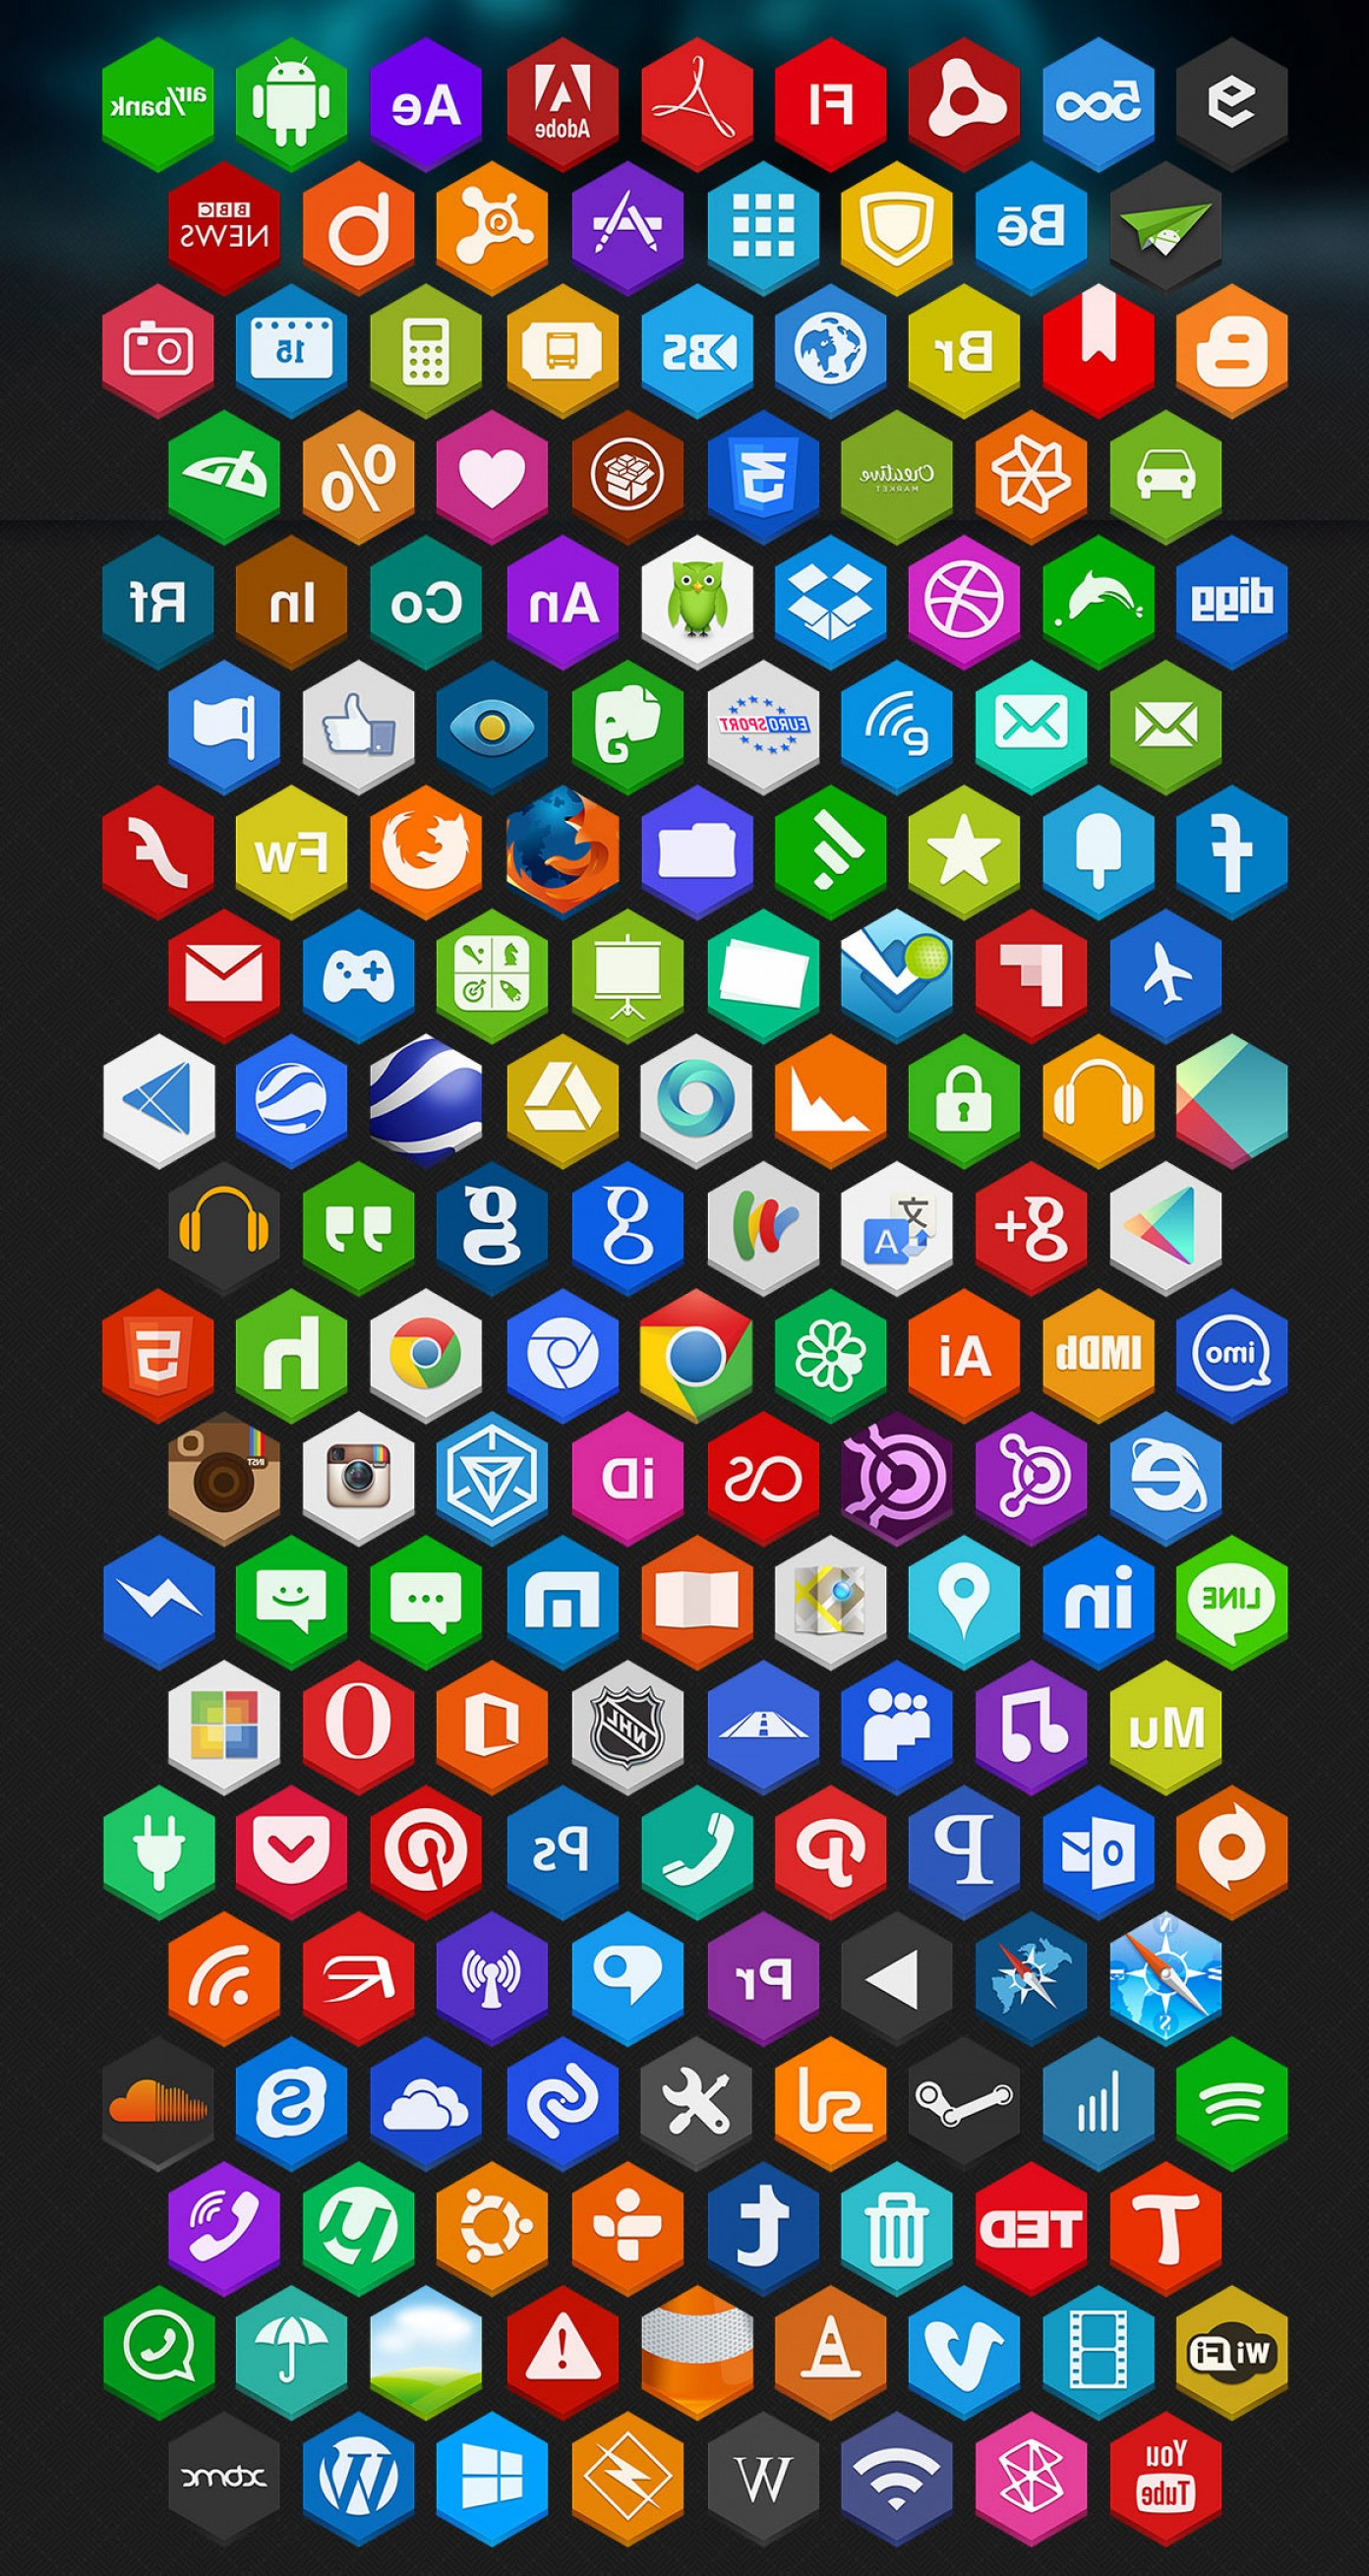 Vector Twitter Icon 2014: Free Flat Social Media Icons Sets